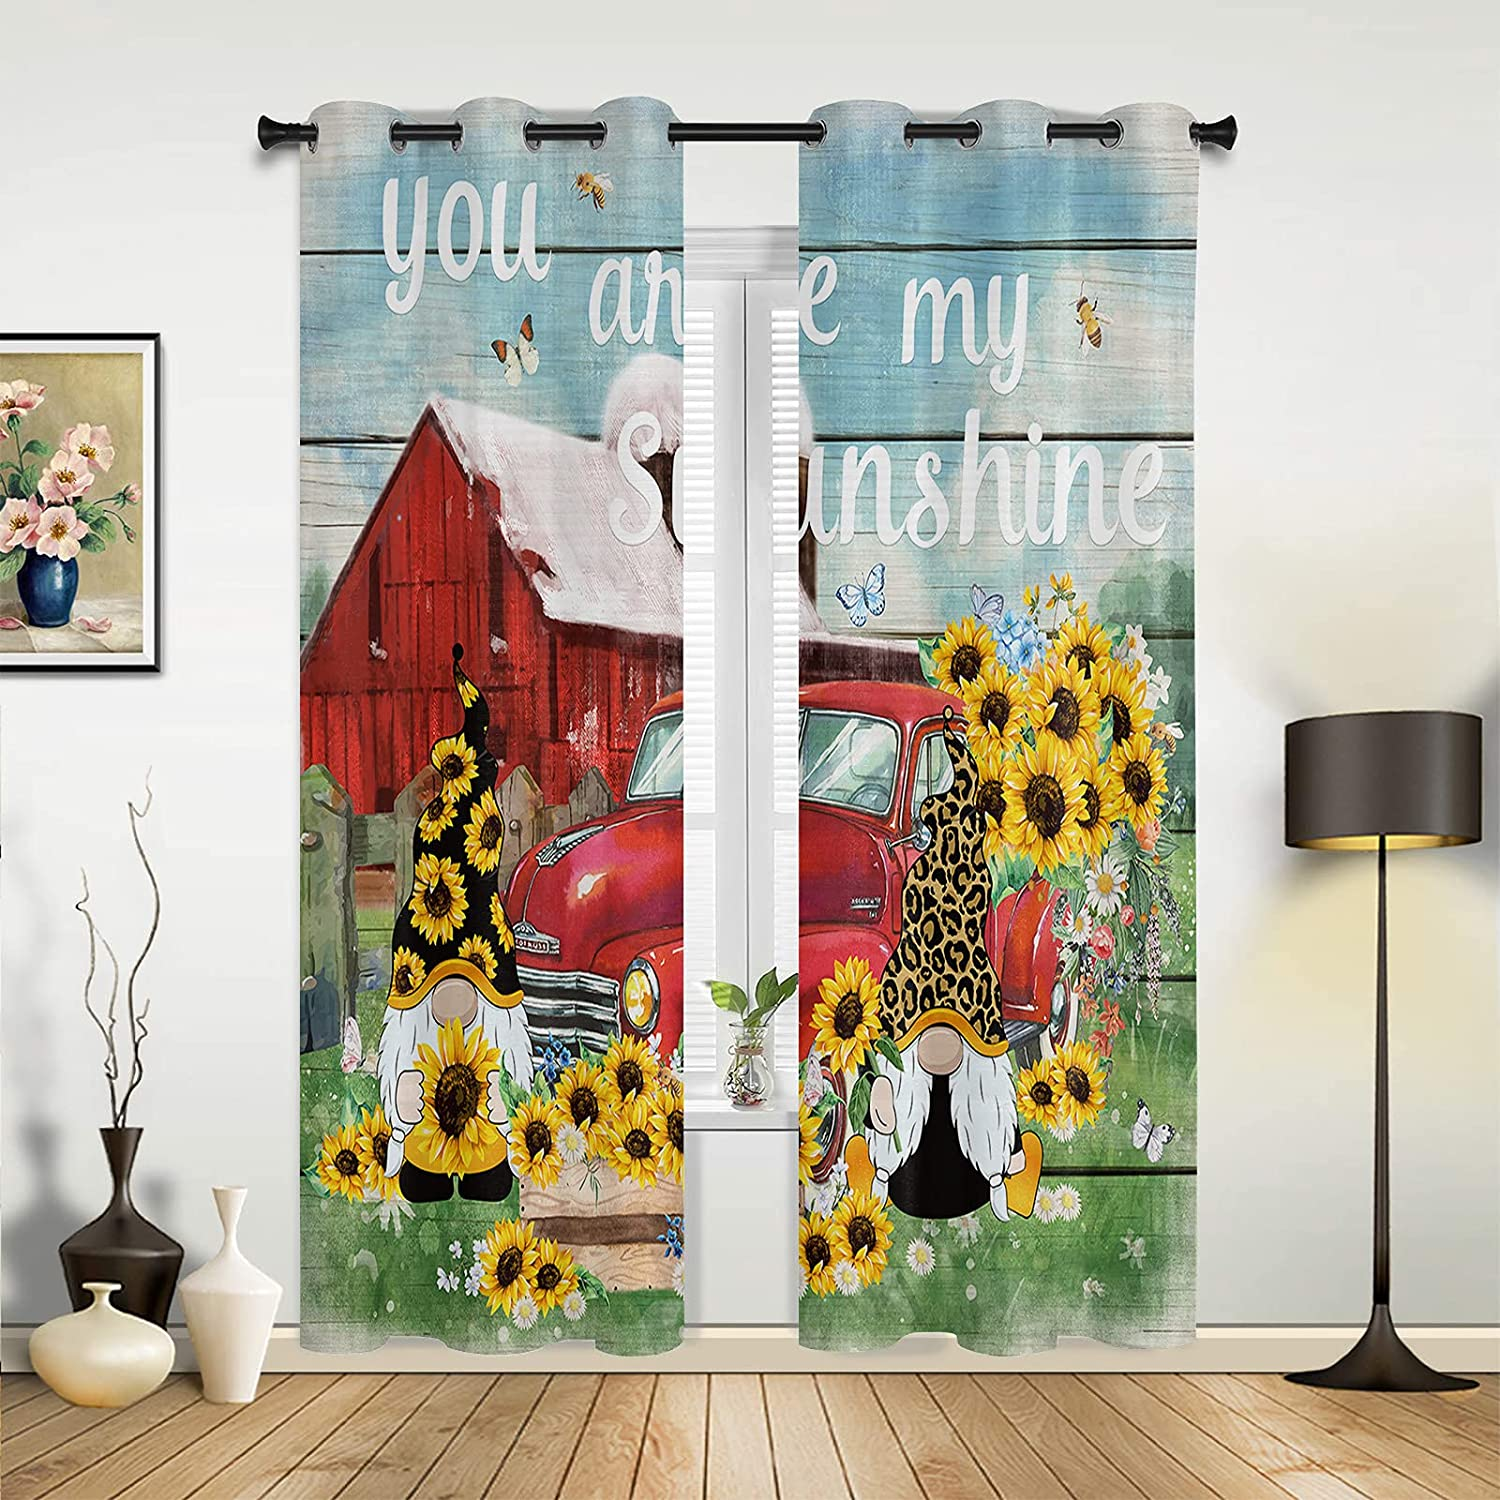 Inventory cleanup selling sale Window Sheer Curtains for New mail order Bedroom Living Farm Room F Barn Summer